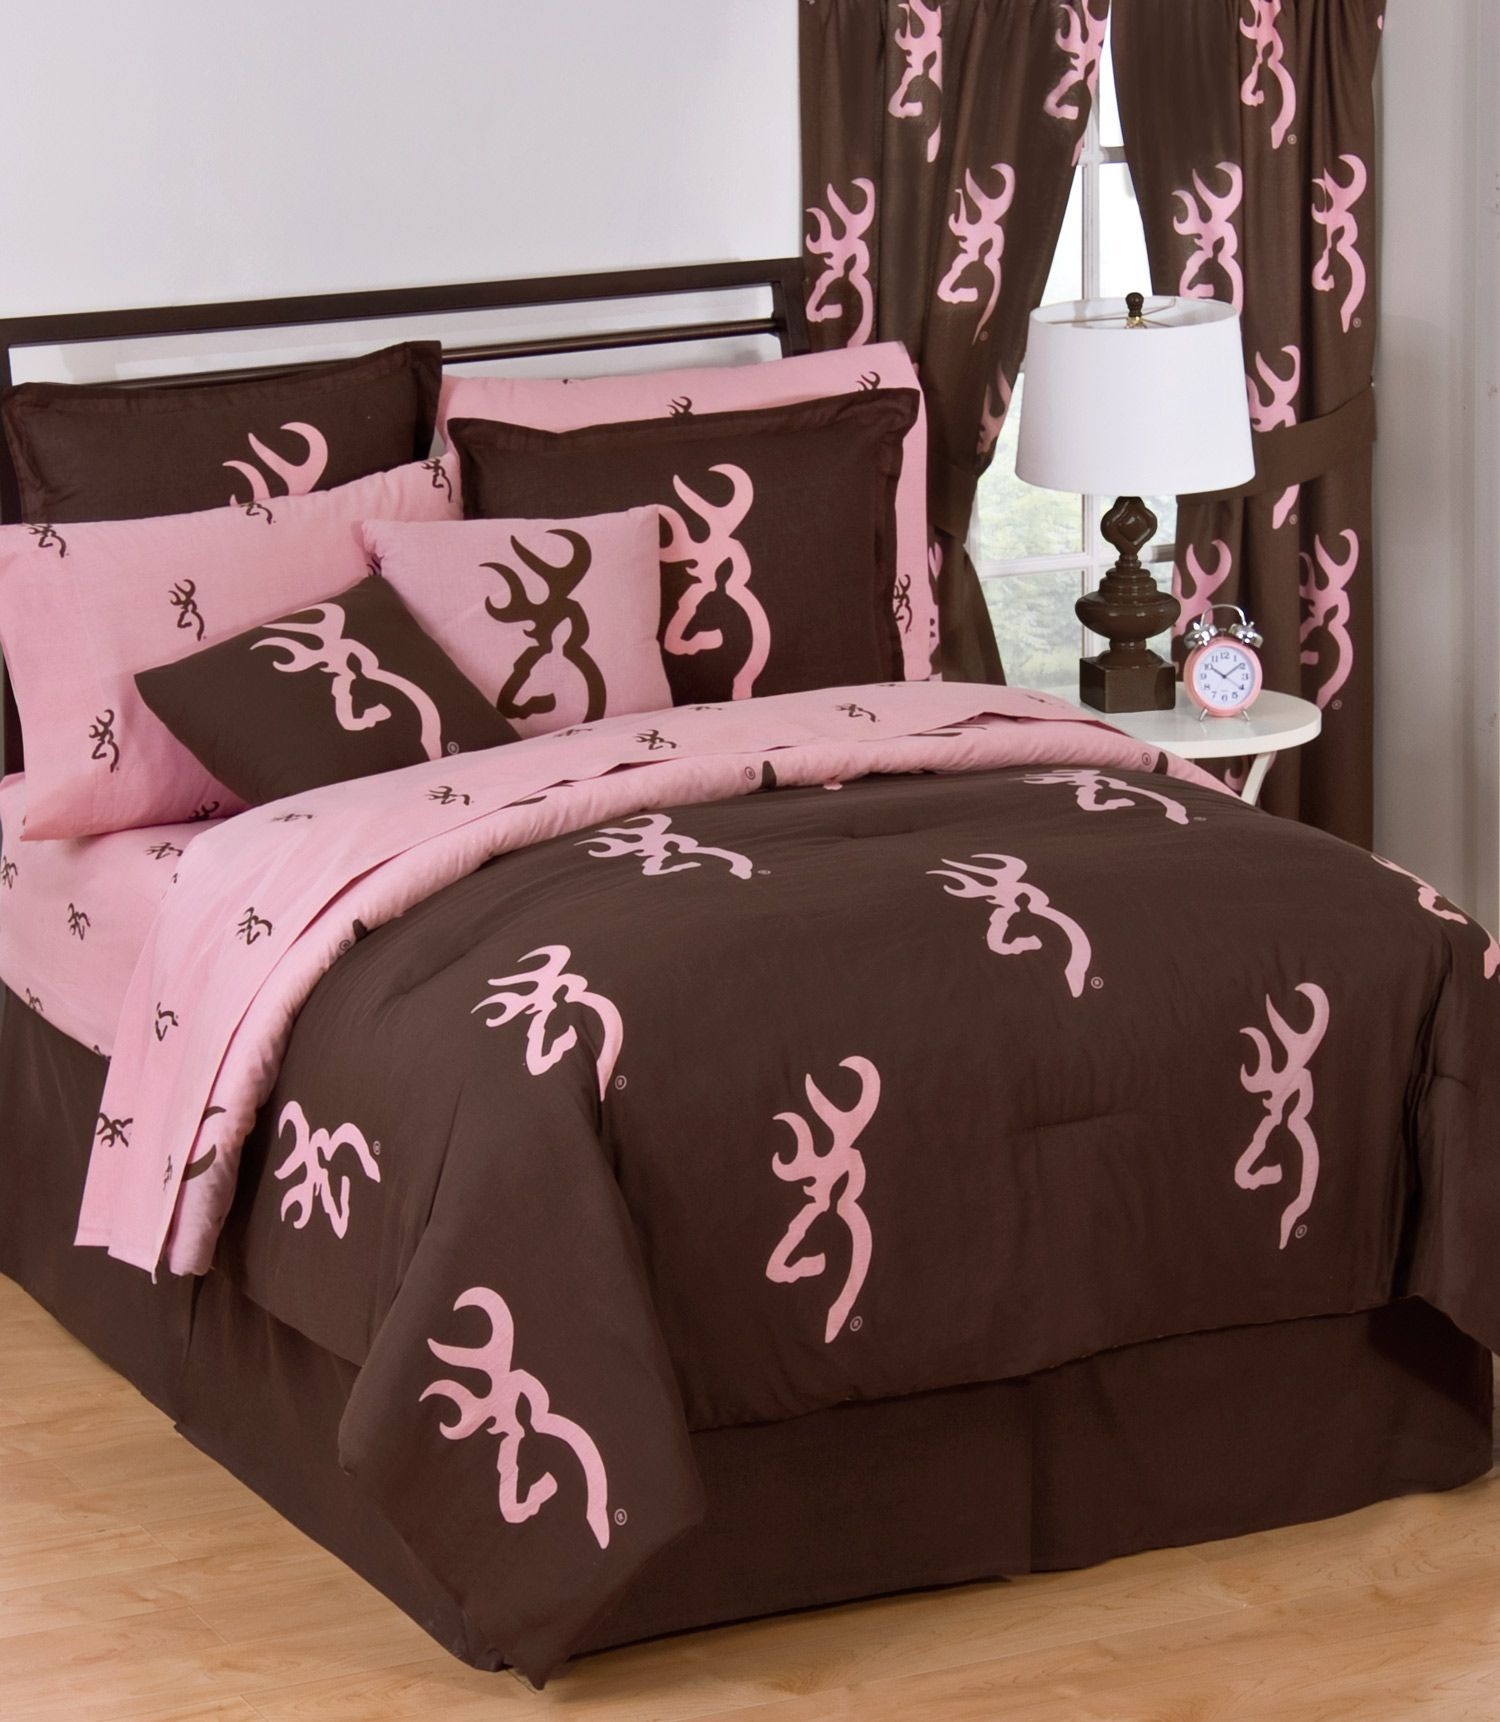 hunting bedroom decor for girls | Camouflage Gifts for Mother\'s Day ...